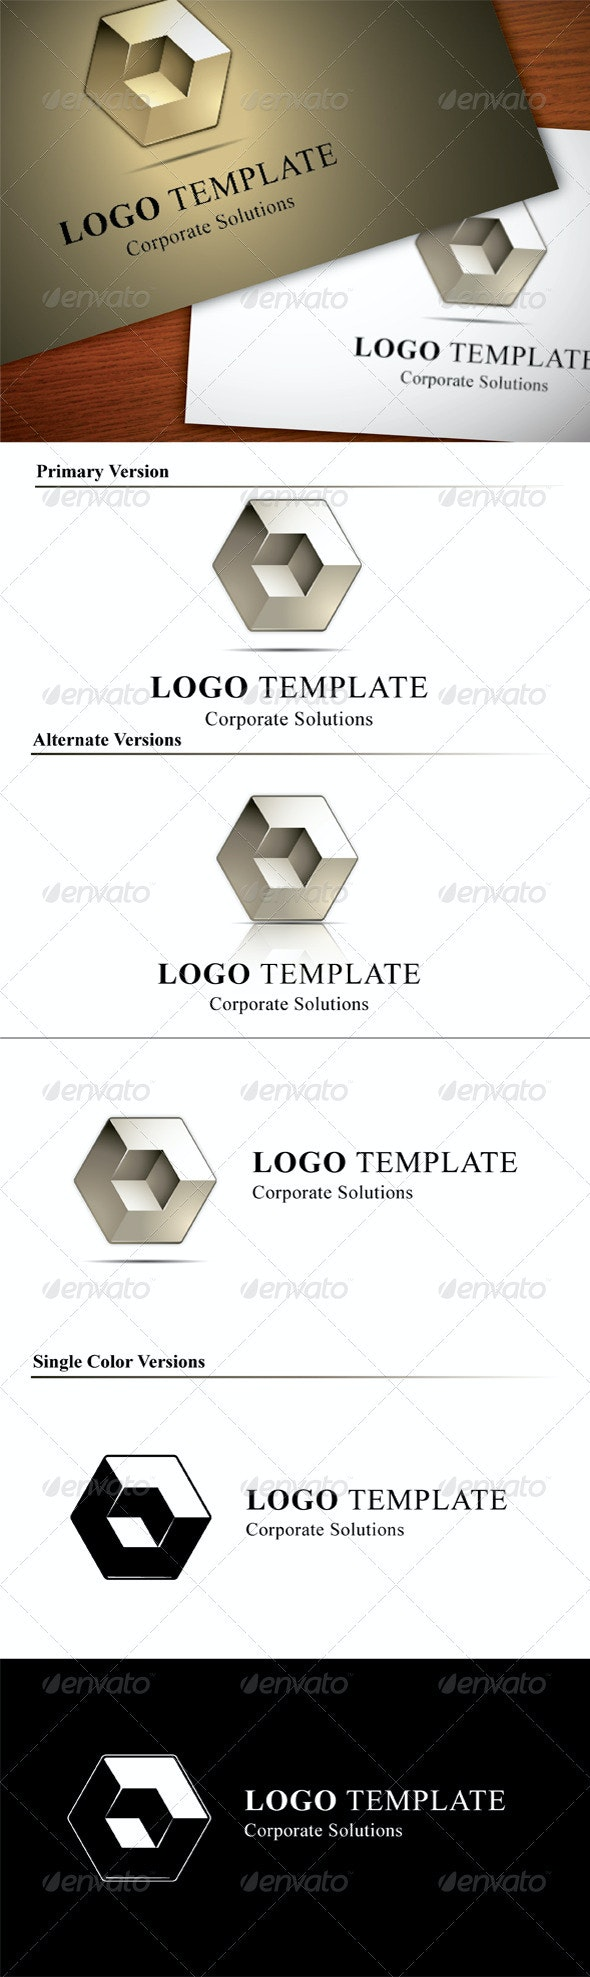 Abstract Logo Template, Corporate Solutions - 3d Abstract